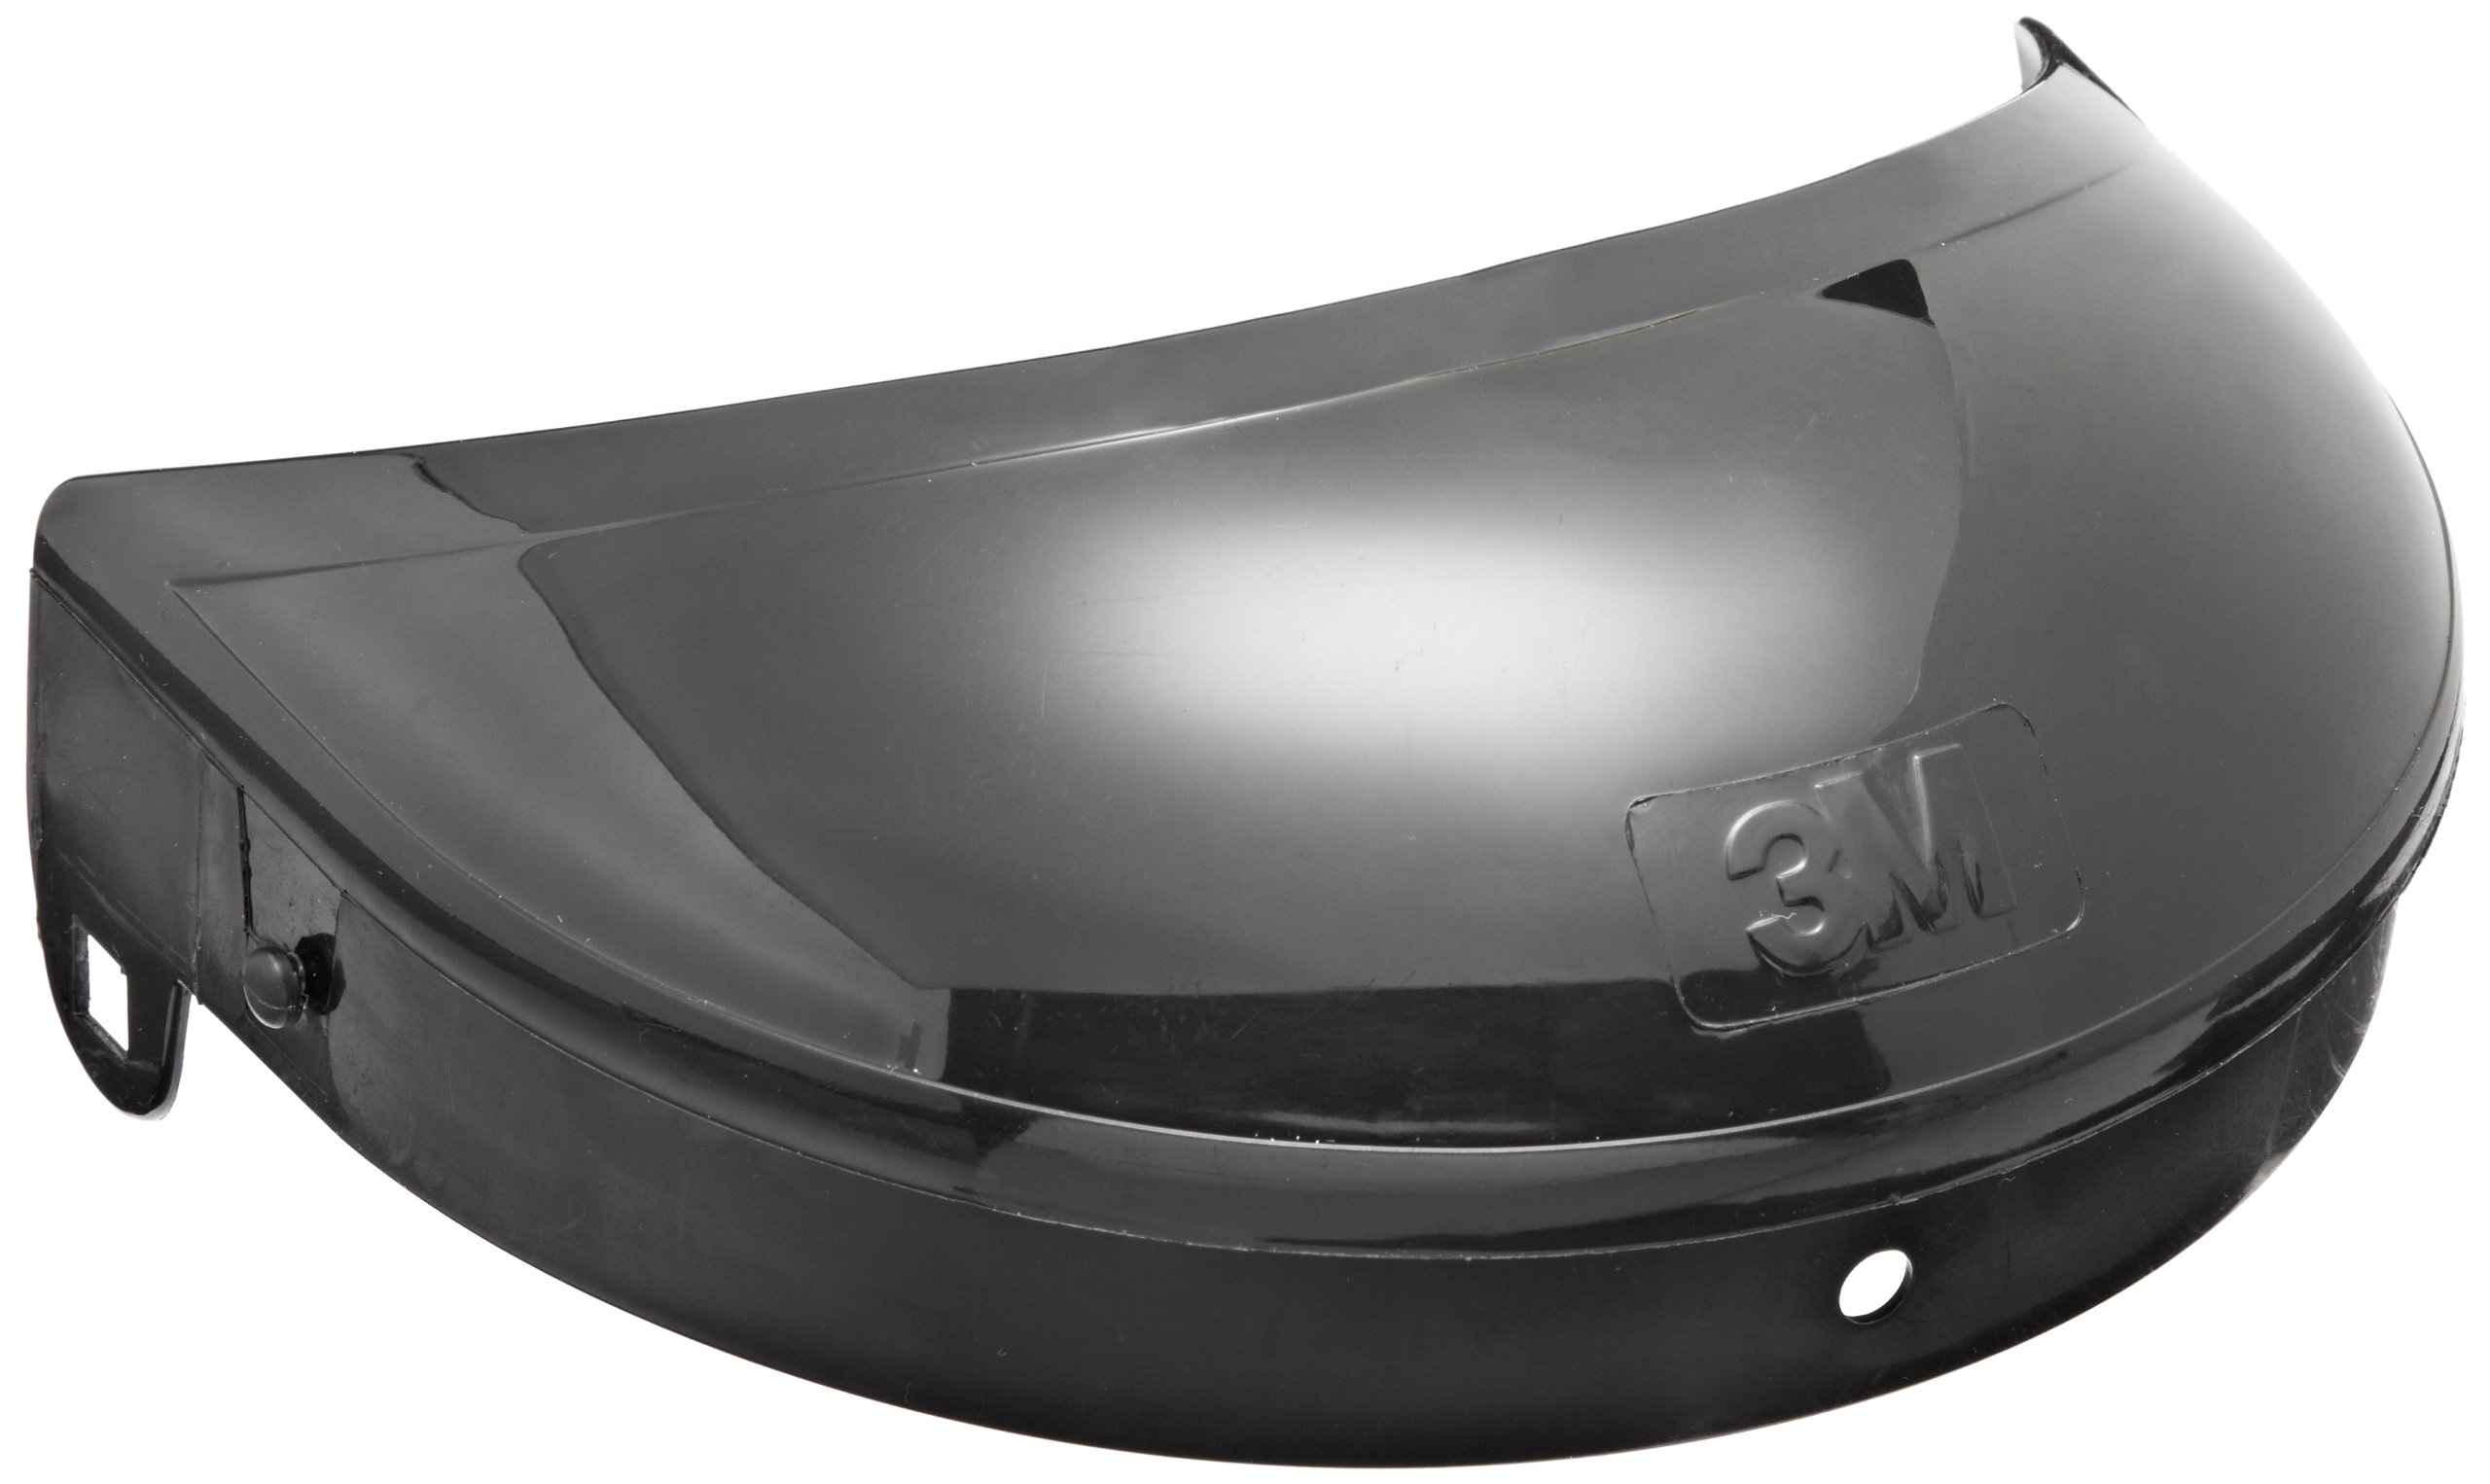 3M ClearVisor Brow Guard, Welding Safety 16-0099-27